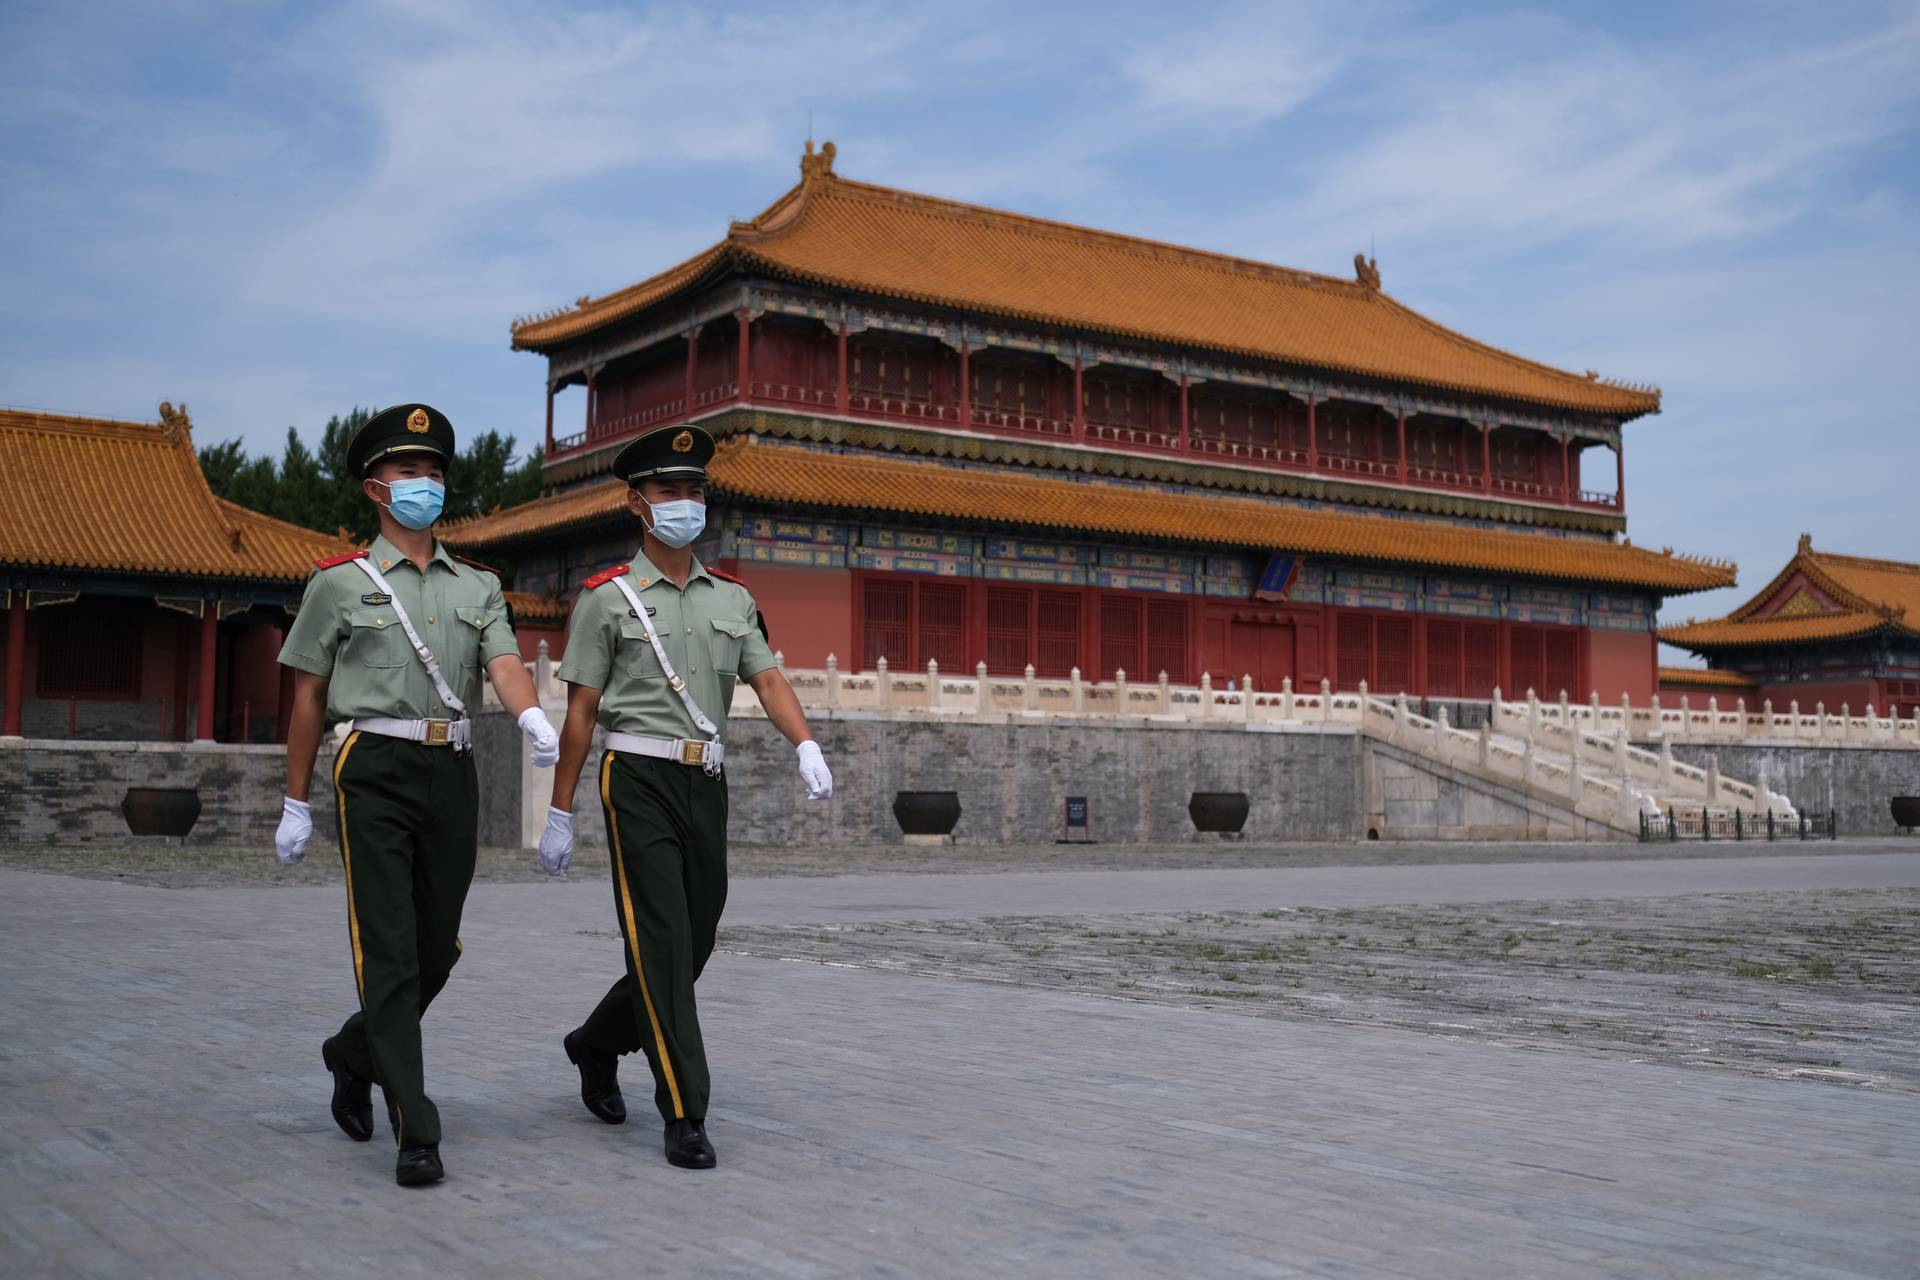 Paramilitary police officers wearing face masks walk at the Forbidden City following the outbreak of the coronavirus disease (COVID-19), in Beijing